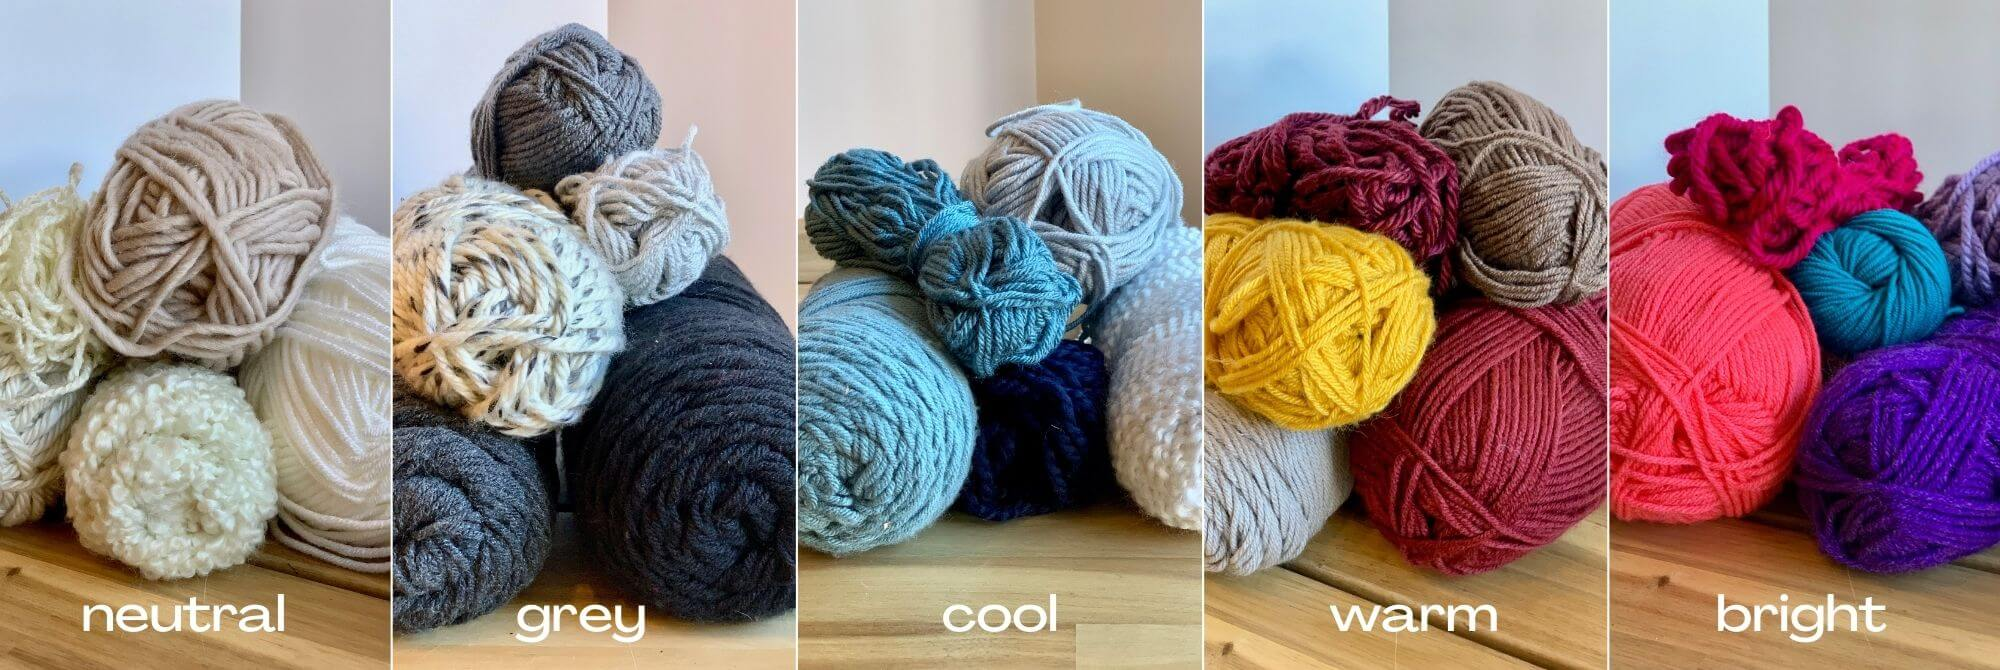 yarn wall hanging color options-neutral-grey-cool-warm-bright